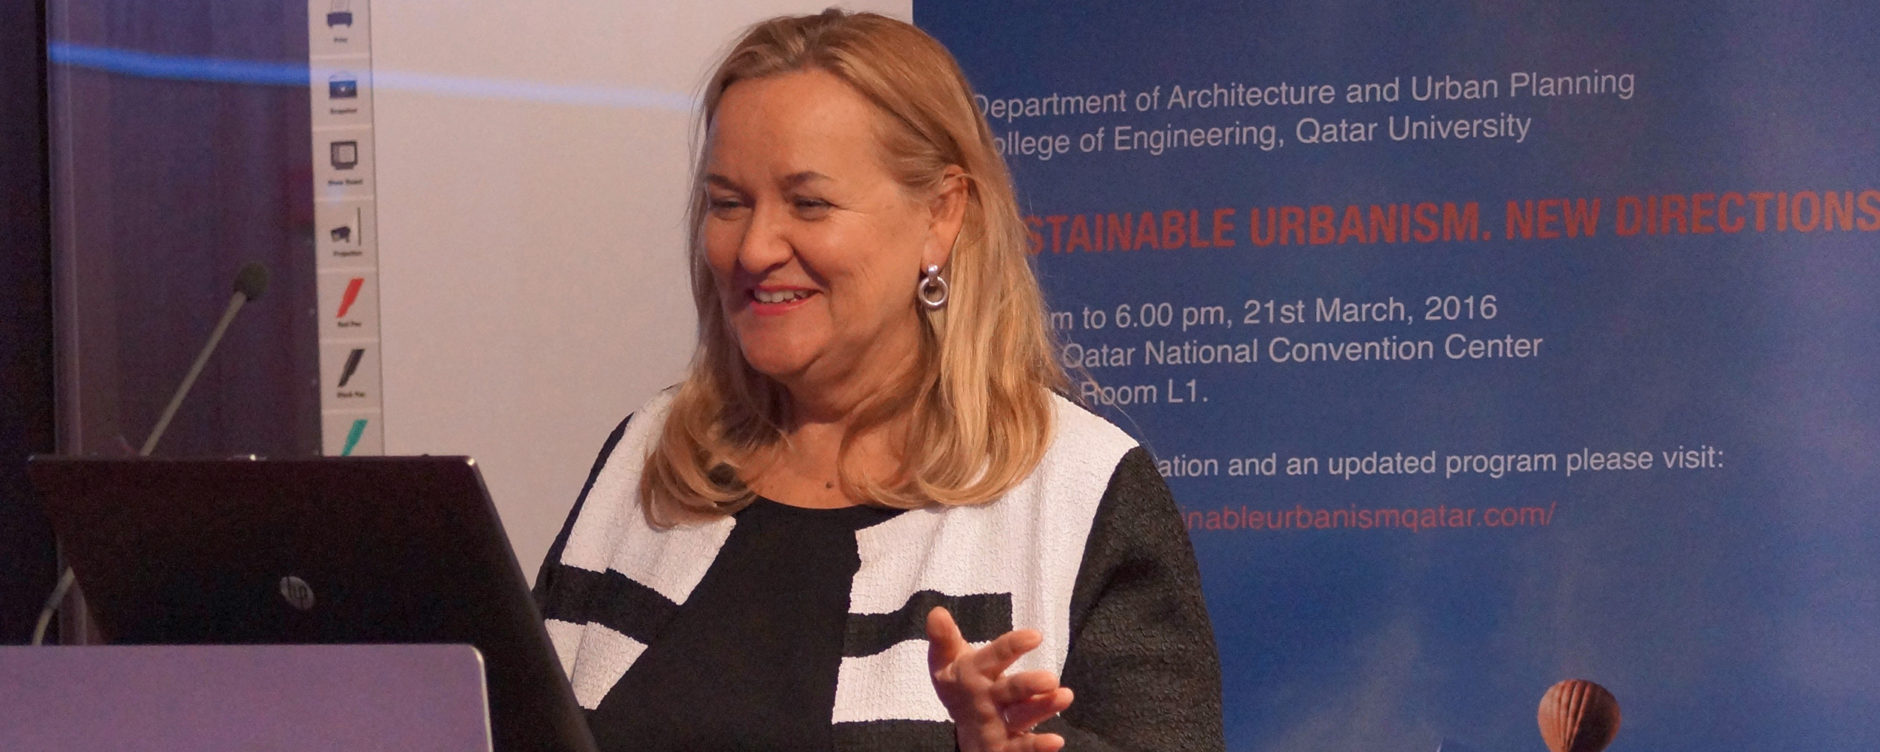 Patricia McCarney, Sustainable Urbanism New Directions Workshop, Qatar University, 21 March 2016, © Qatar University.